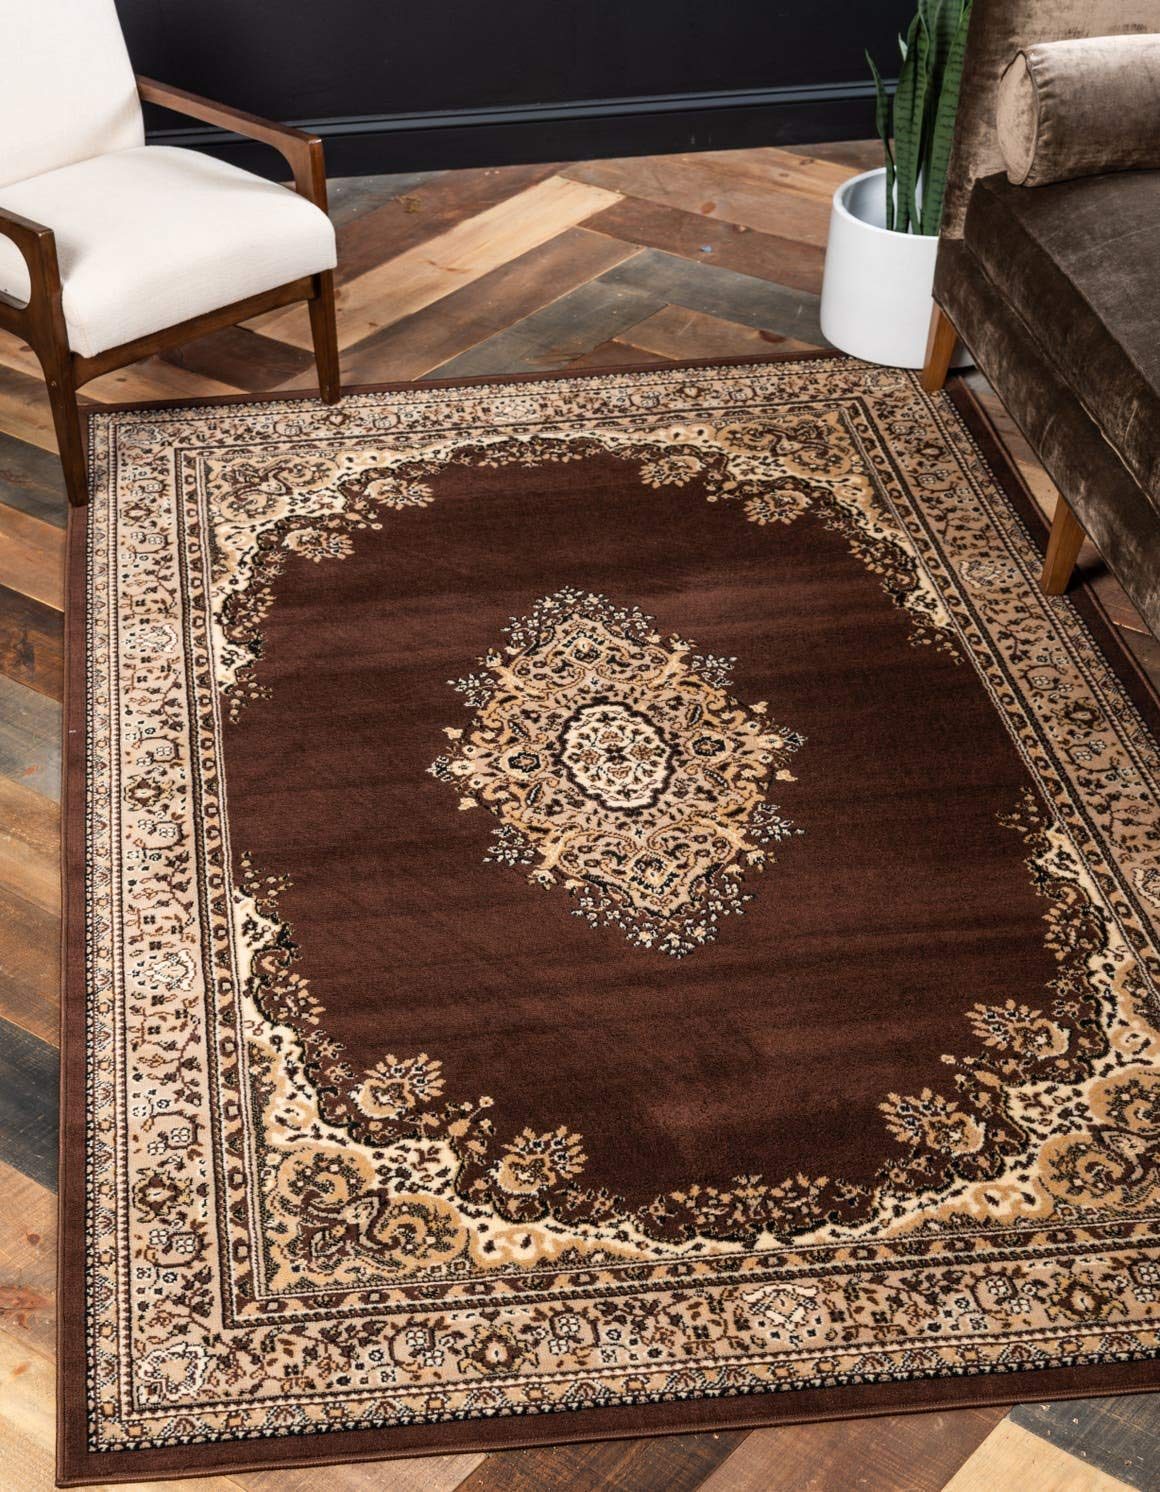 Unique Loom Reza Collection Classic Traditional Brown Area Rug 6 0 x 9 0